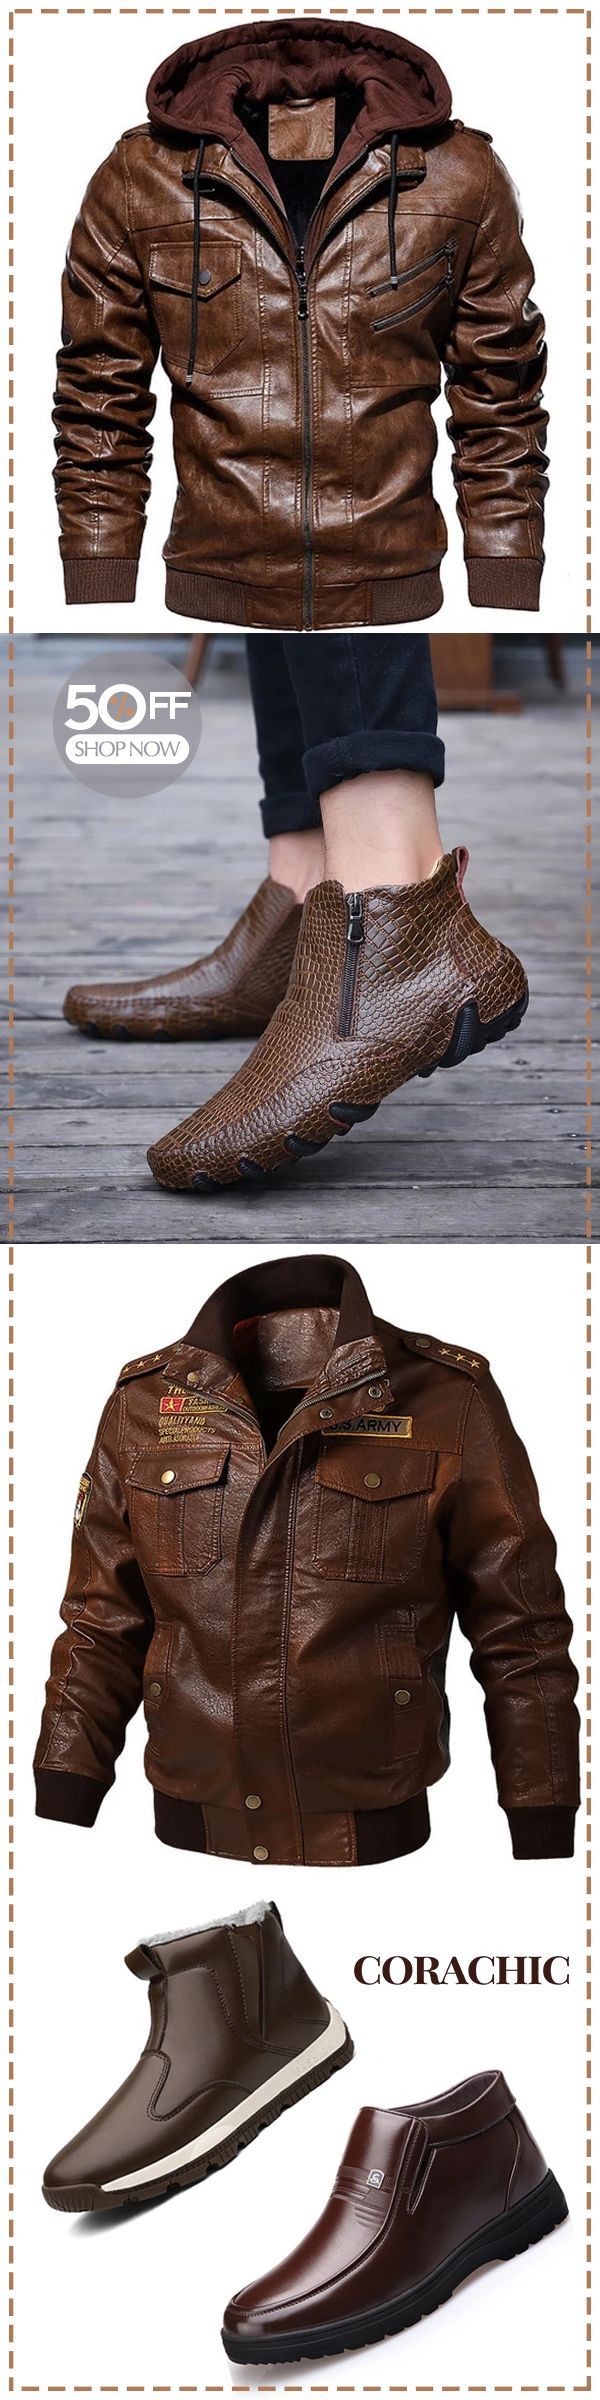 Men's jacket & boot on sale #Men's Fashion